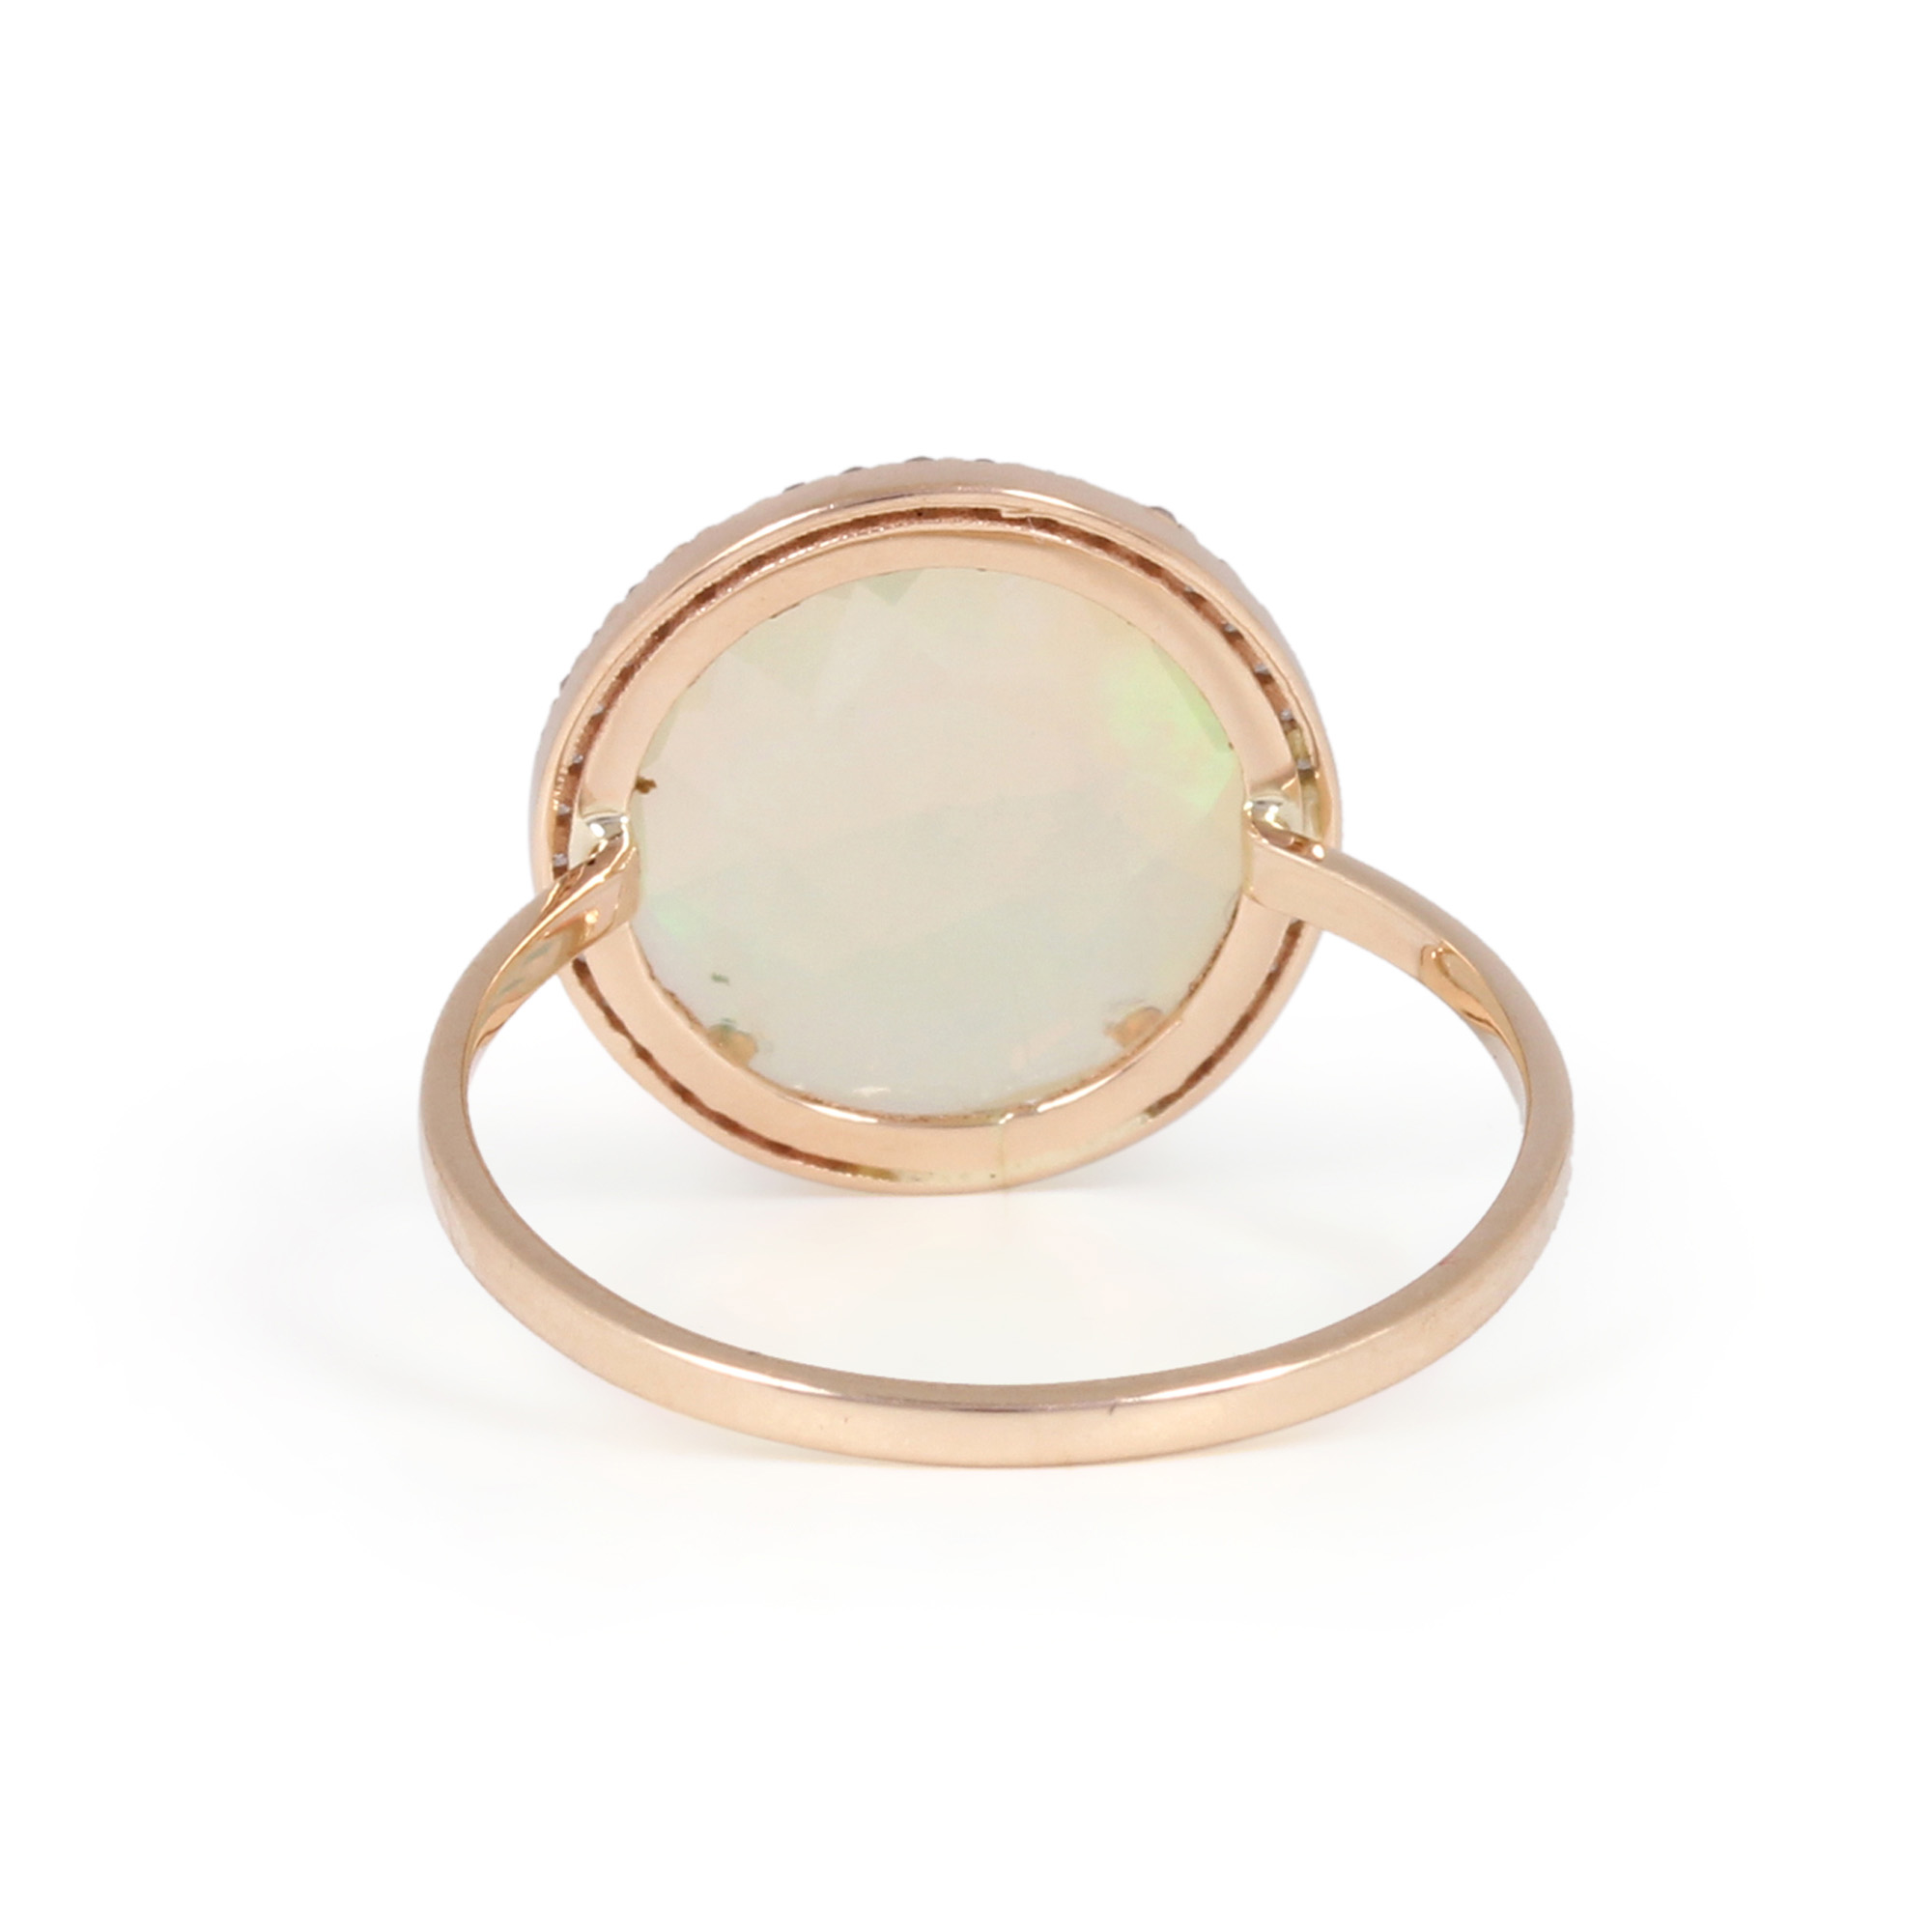 Gemstone Opal Natural Diamond Solid 14K Gold Ring Jewelry